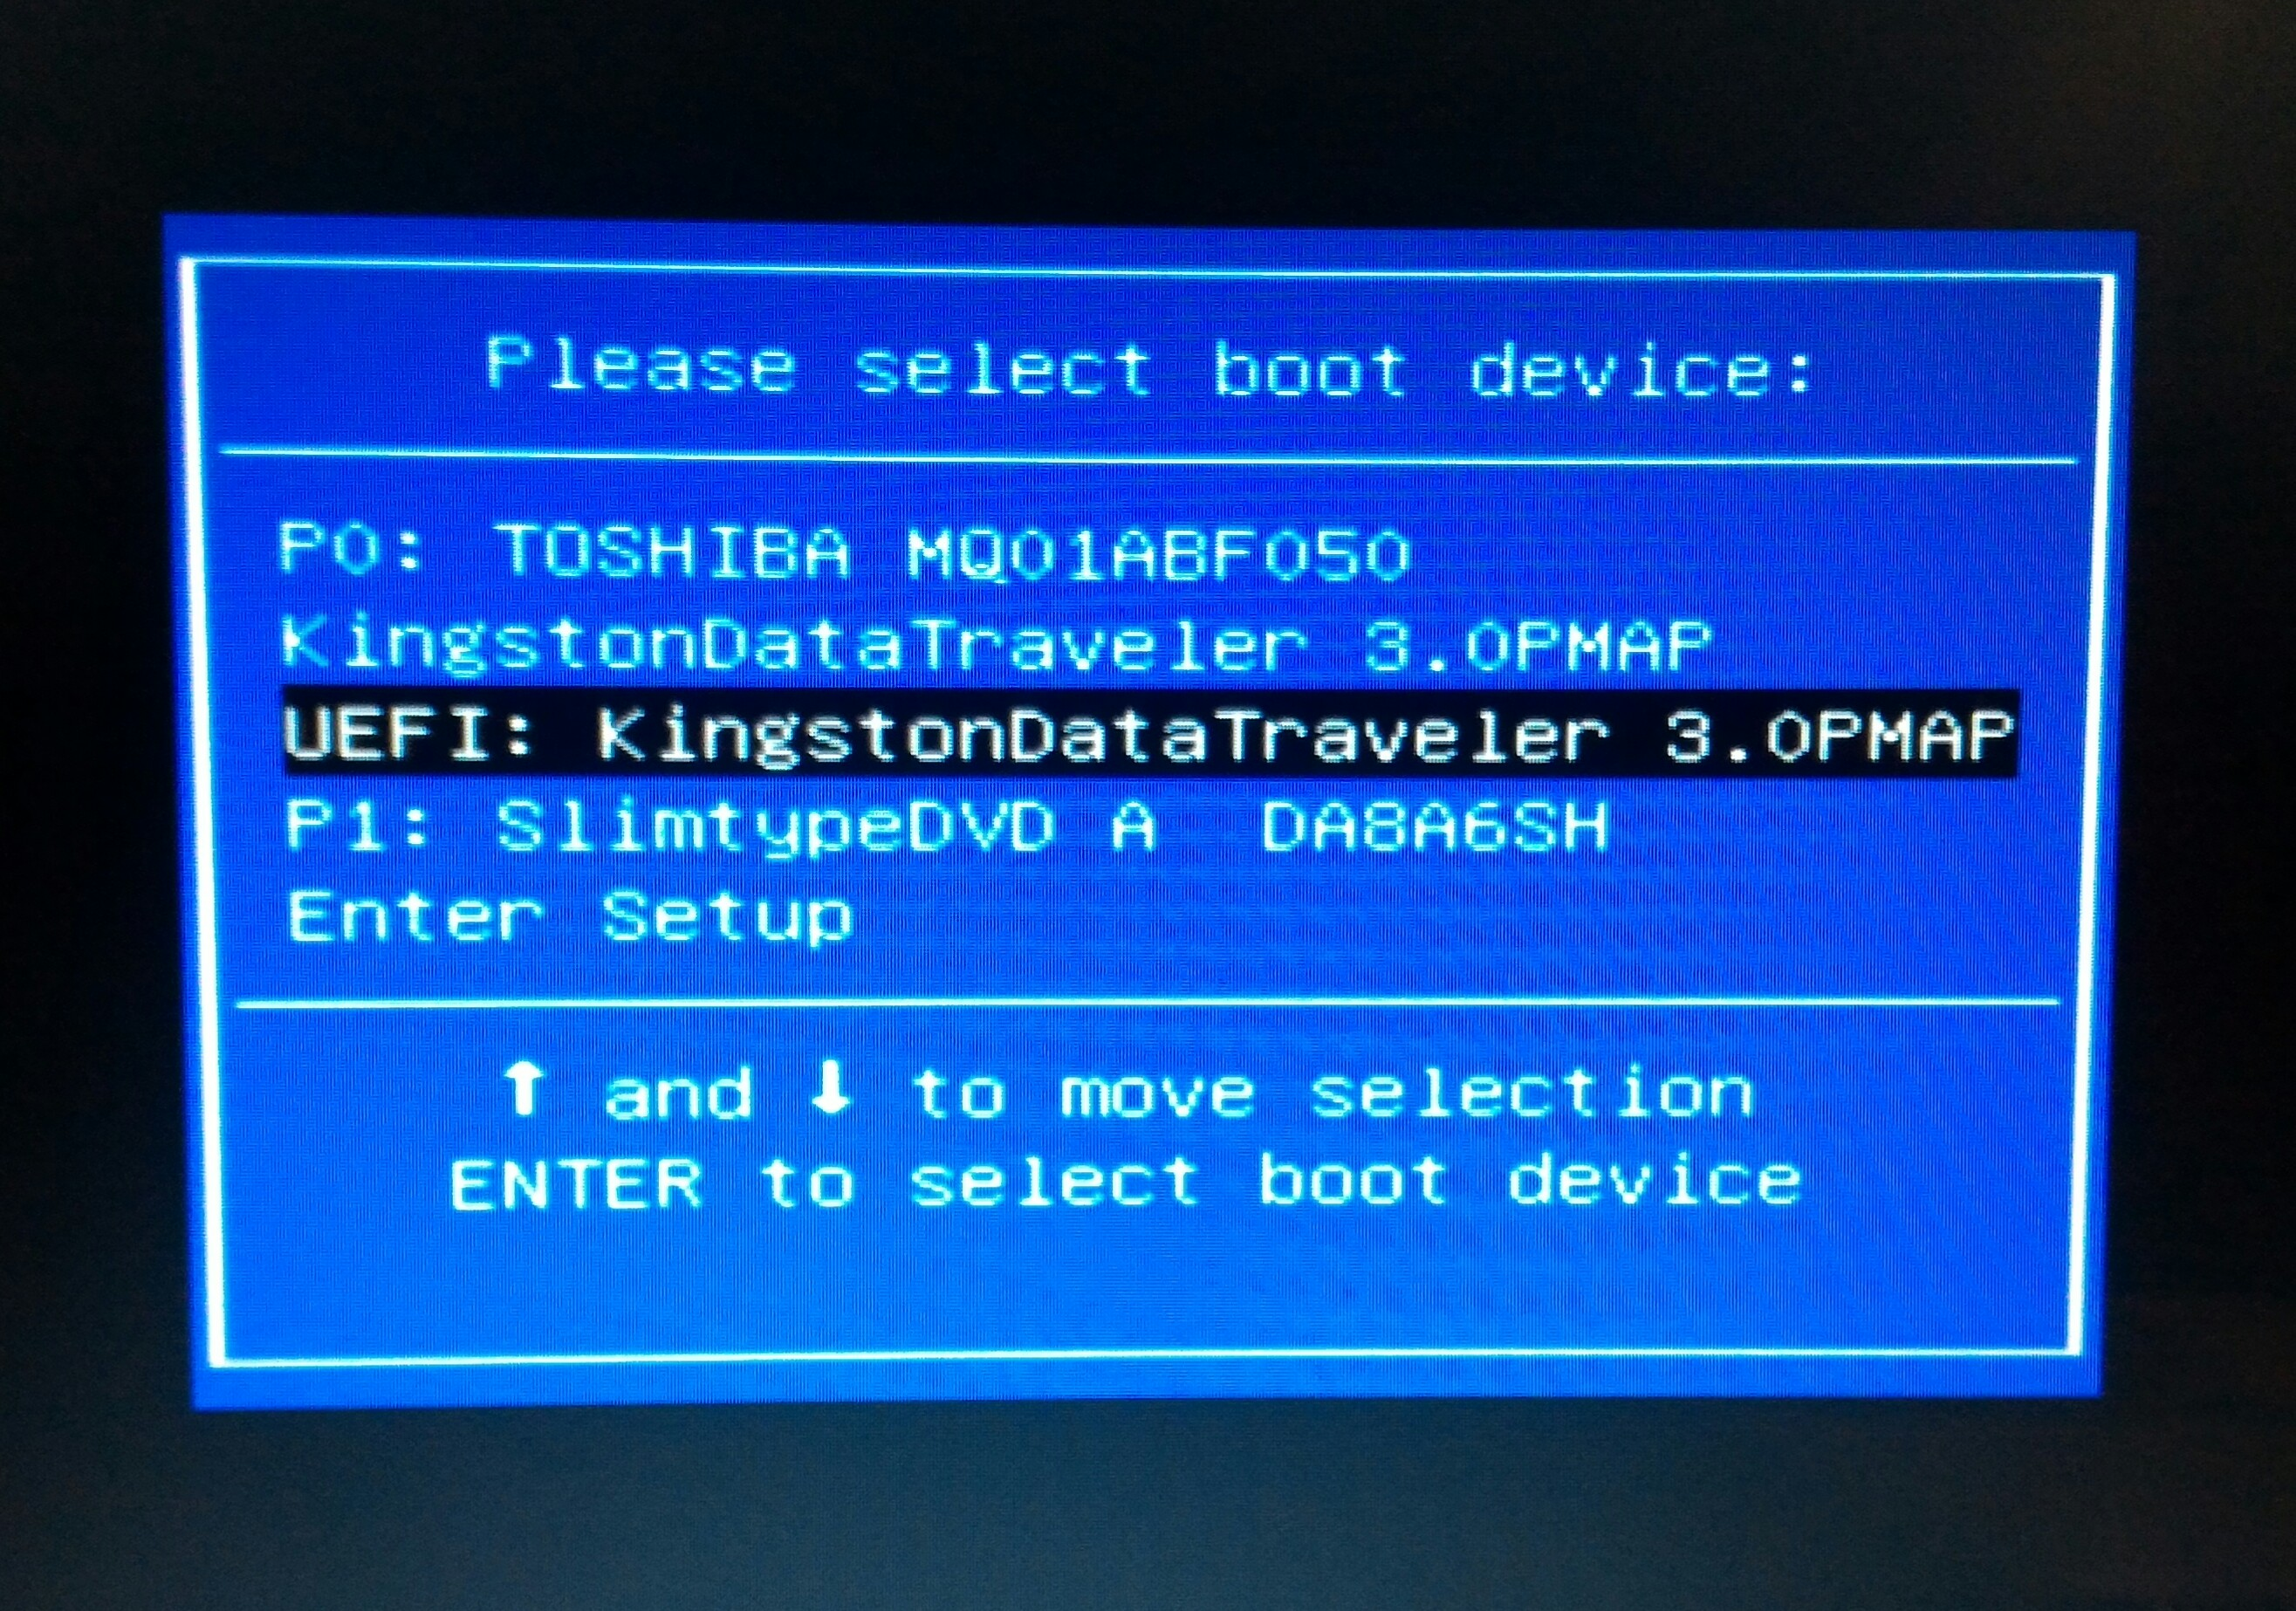 How to call BIOS